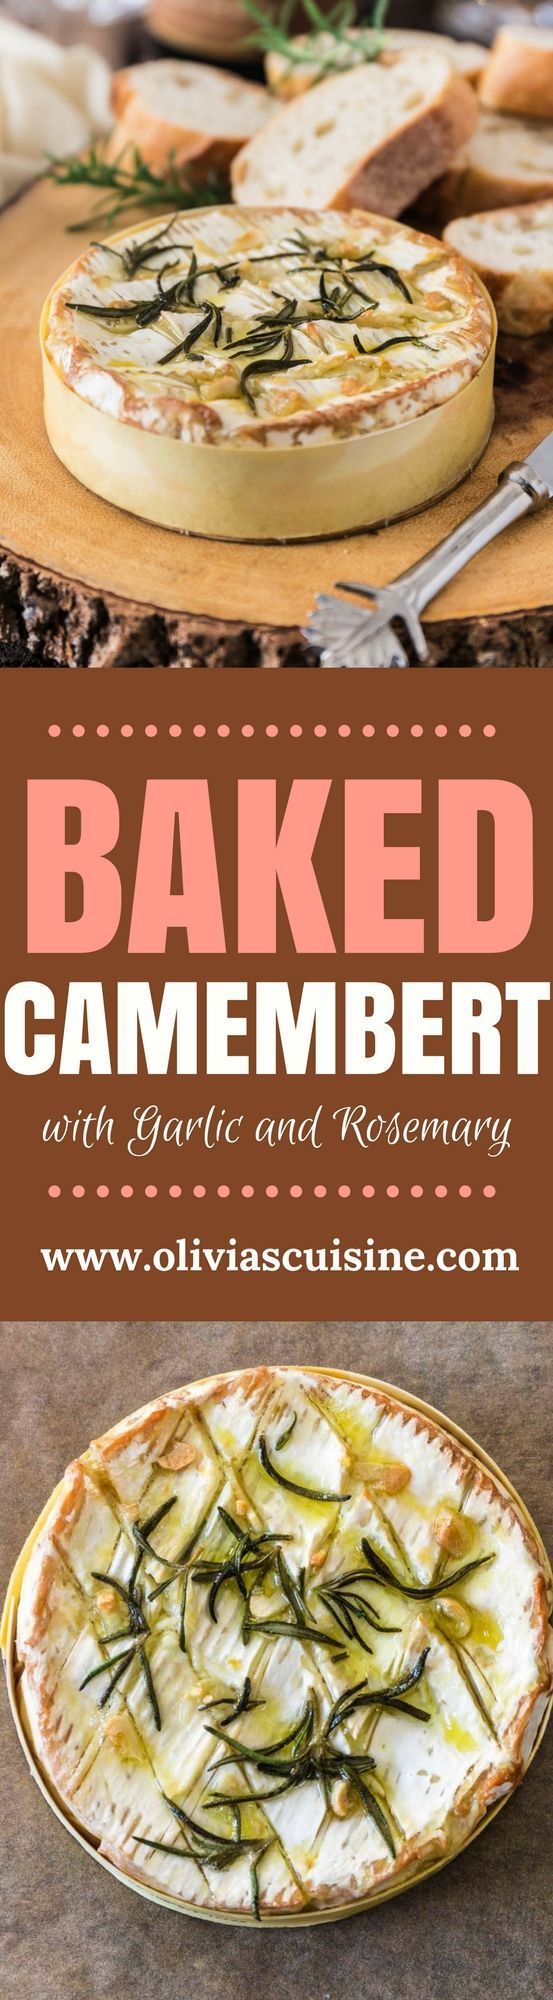 Baked Camembert with Garlic and Rosemary | http://www.oliviascuisine.com | A gooey and fragrant Baked Camembert is always a must at my dinner parties. This version with garlic and rosemary is one of my favorites and pairs greatly with a glass of bubbly! (Sponsored by /gloriaferrer/)